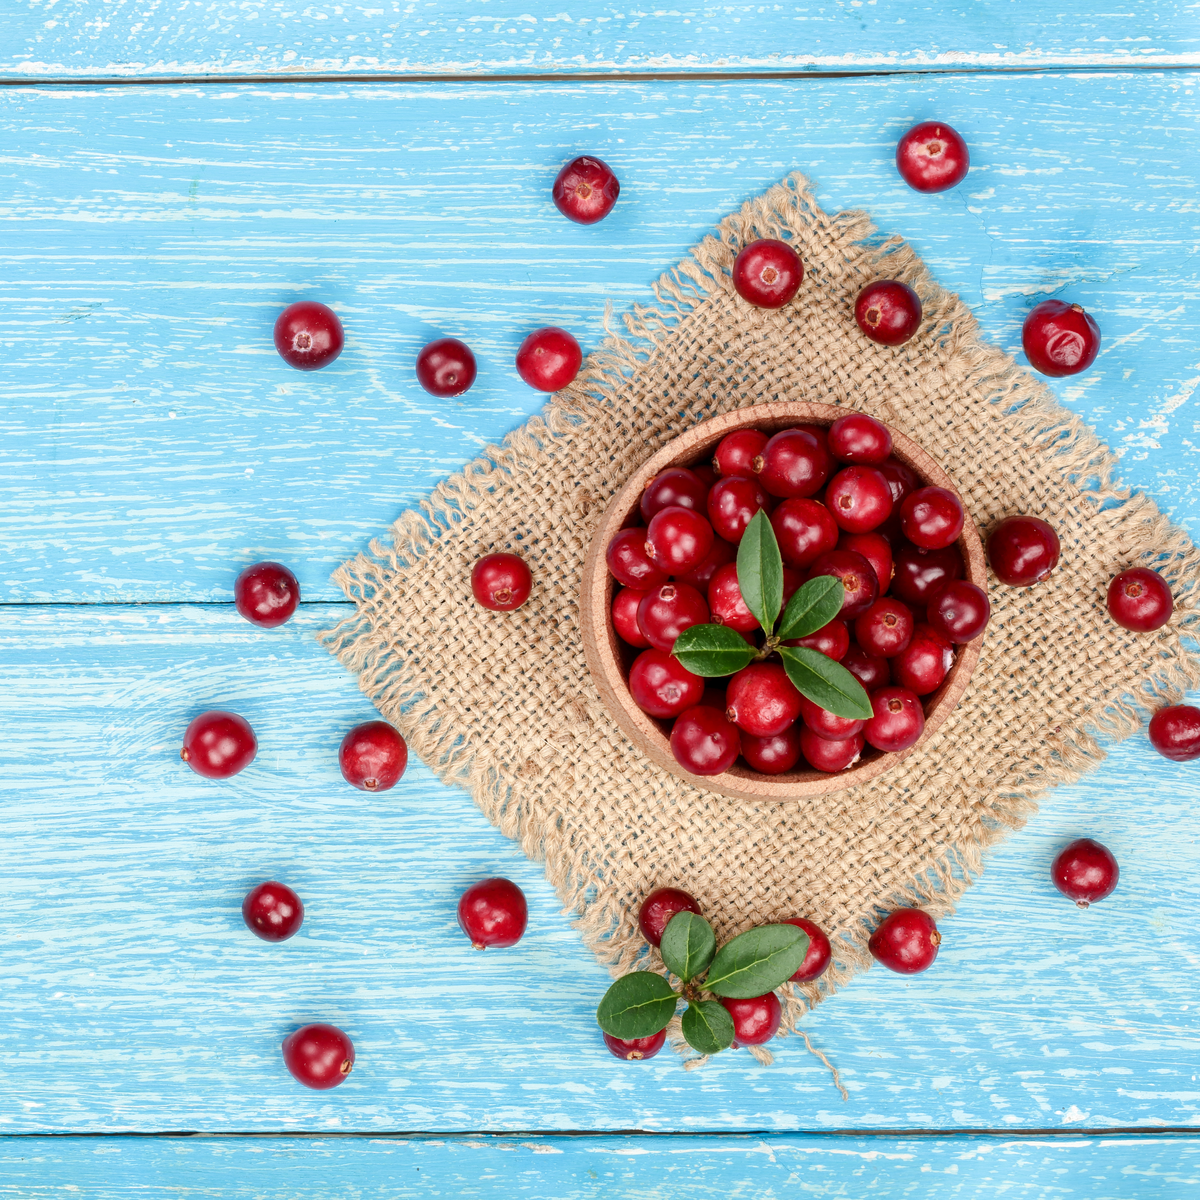 Cranberry Supplement for BV & UTI Prevention and Relief